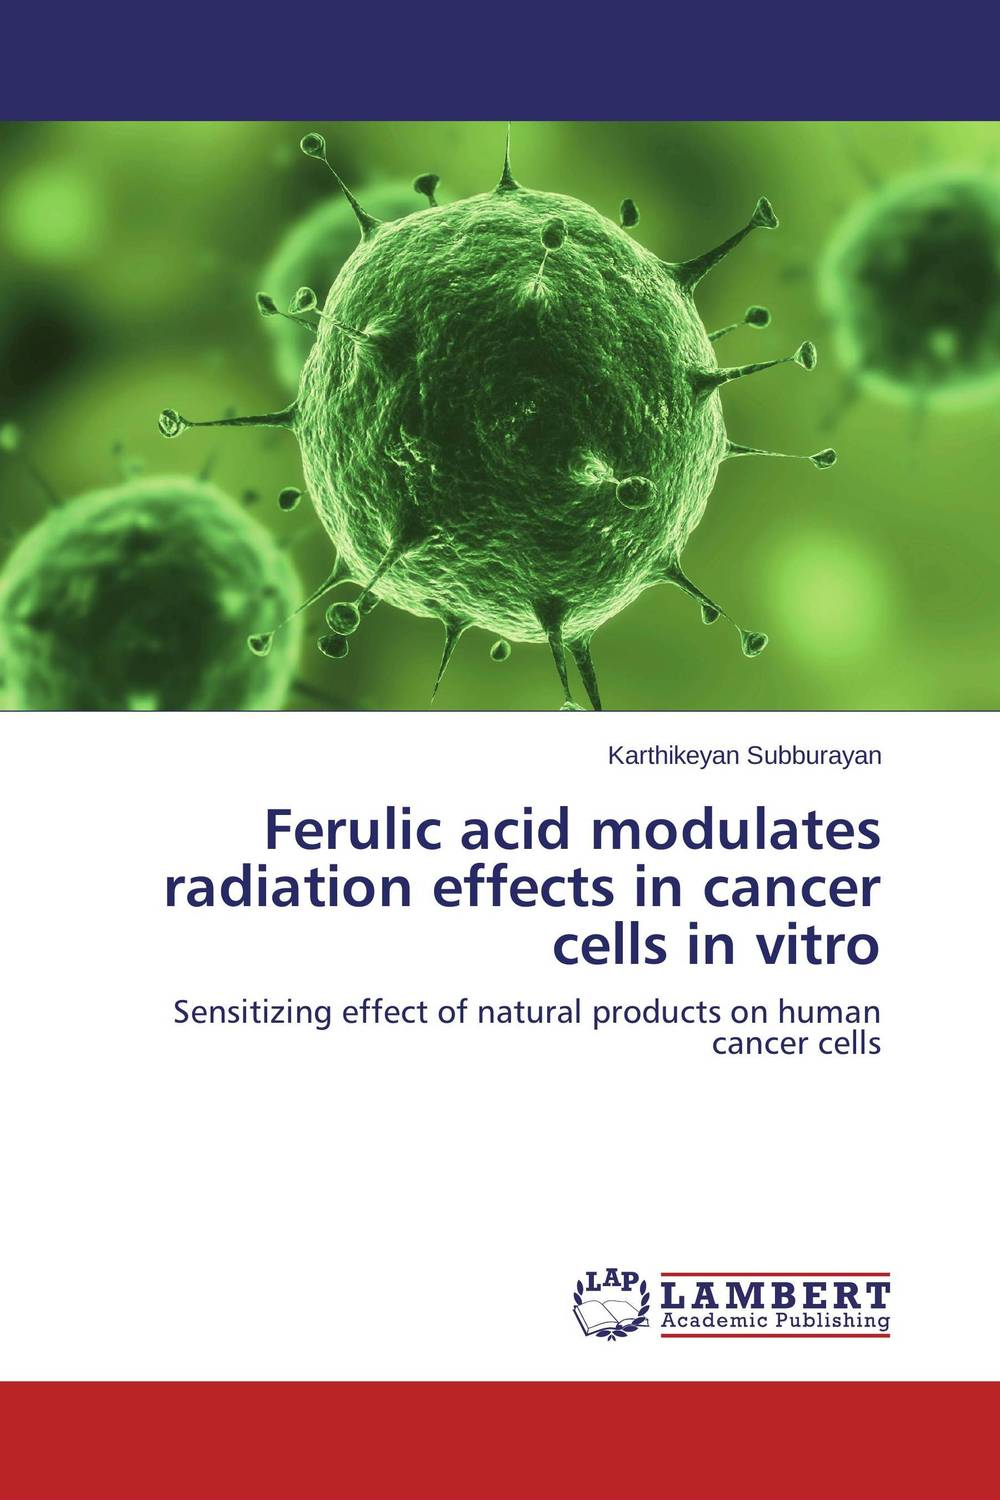 Ferulic acid modulates radiation effects in cancer cells in vitro late stage diagnosis of cervical cancer